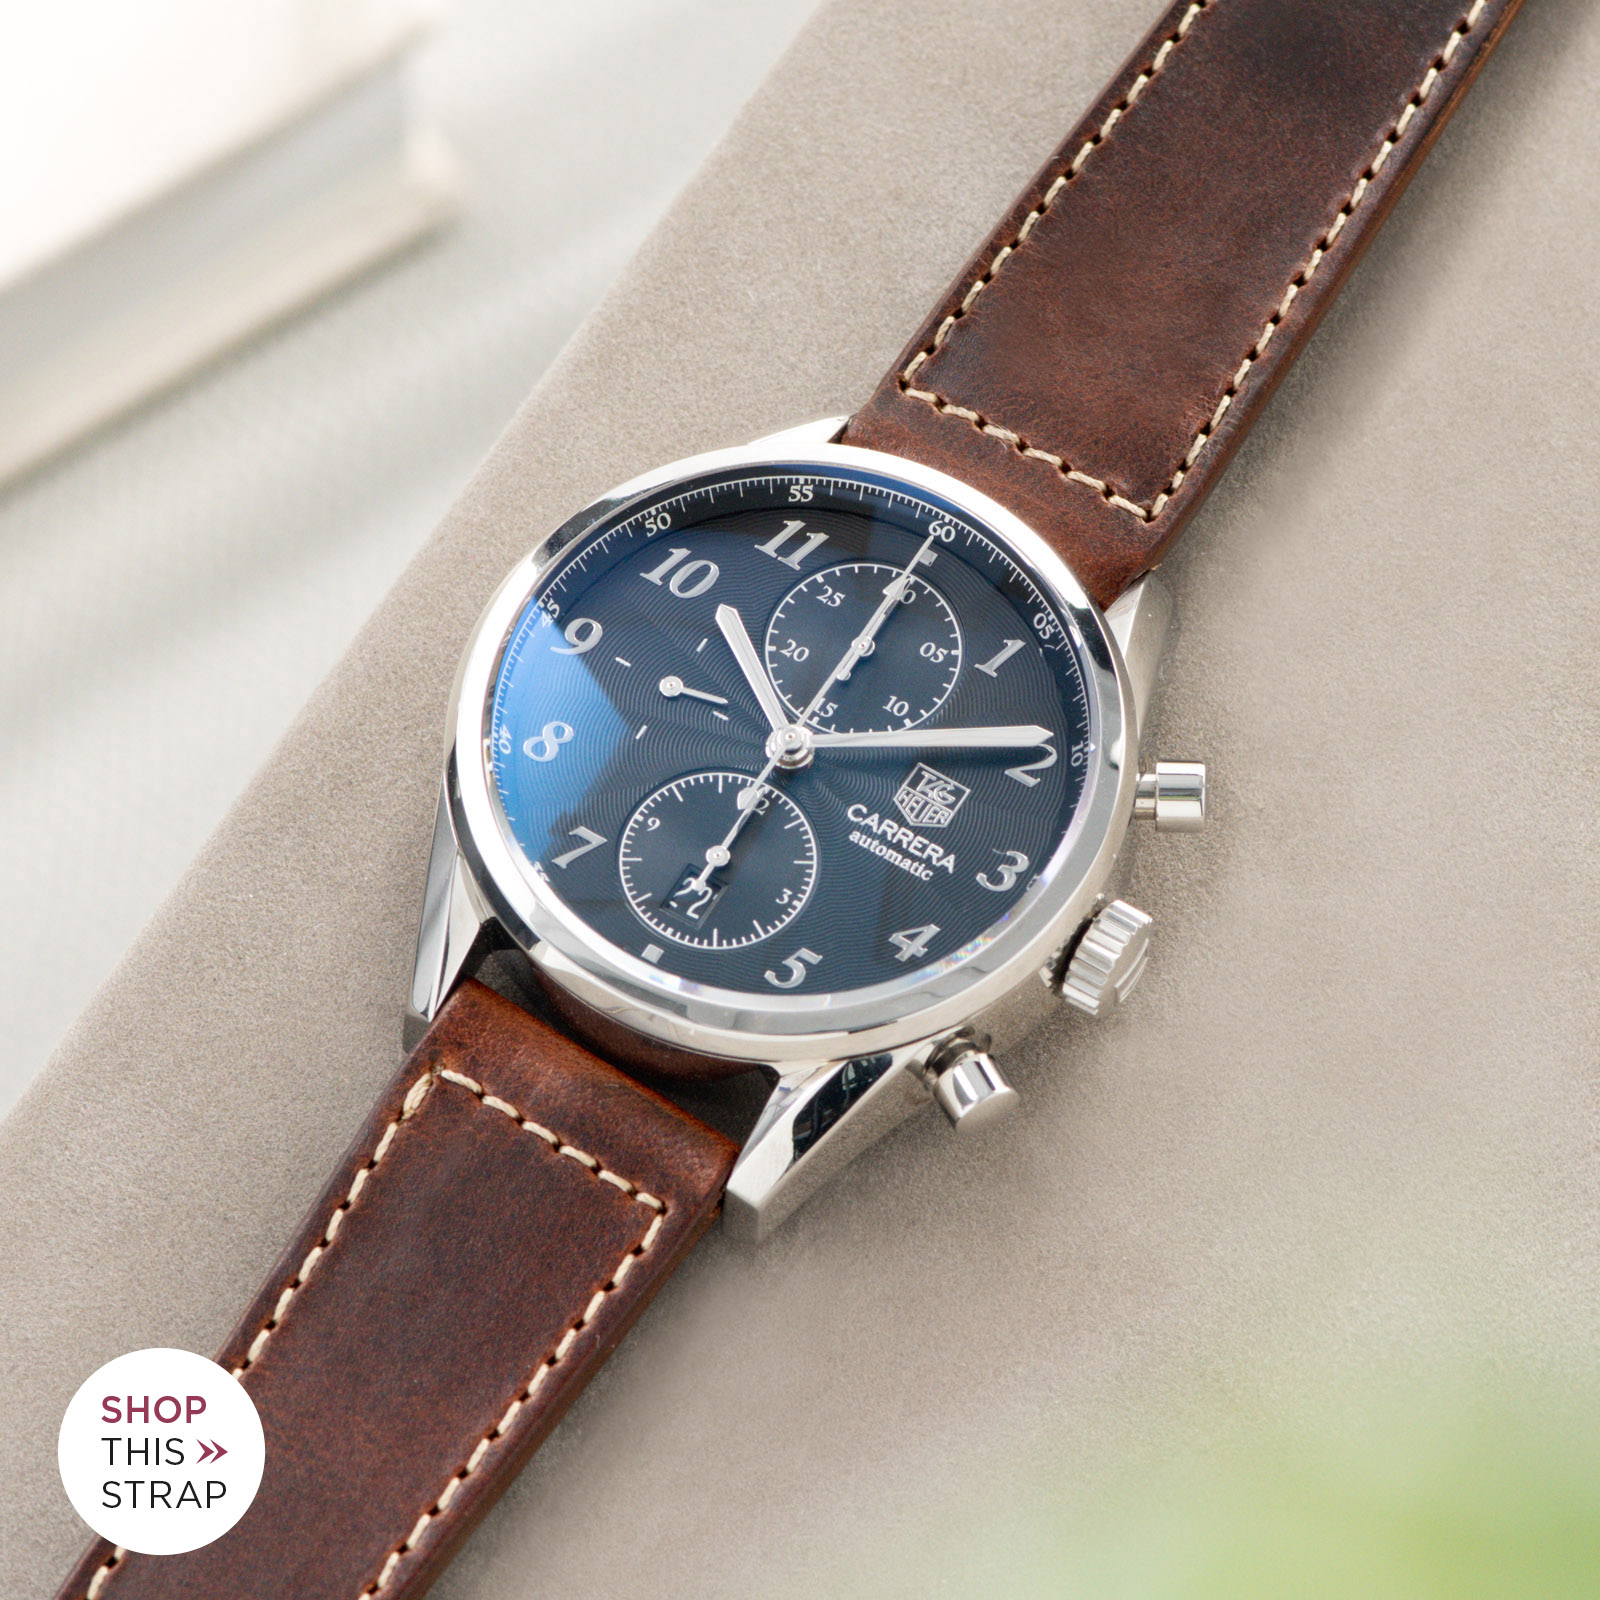 Bulang and Sons_Strap guide_Heuer Carrera Automatic_Siena Brown Boxed Stitch Leather Watch Strap